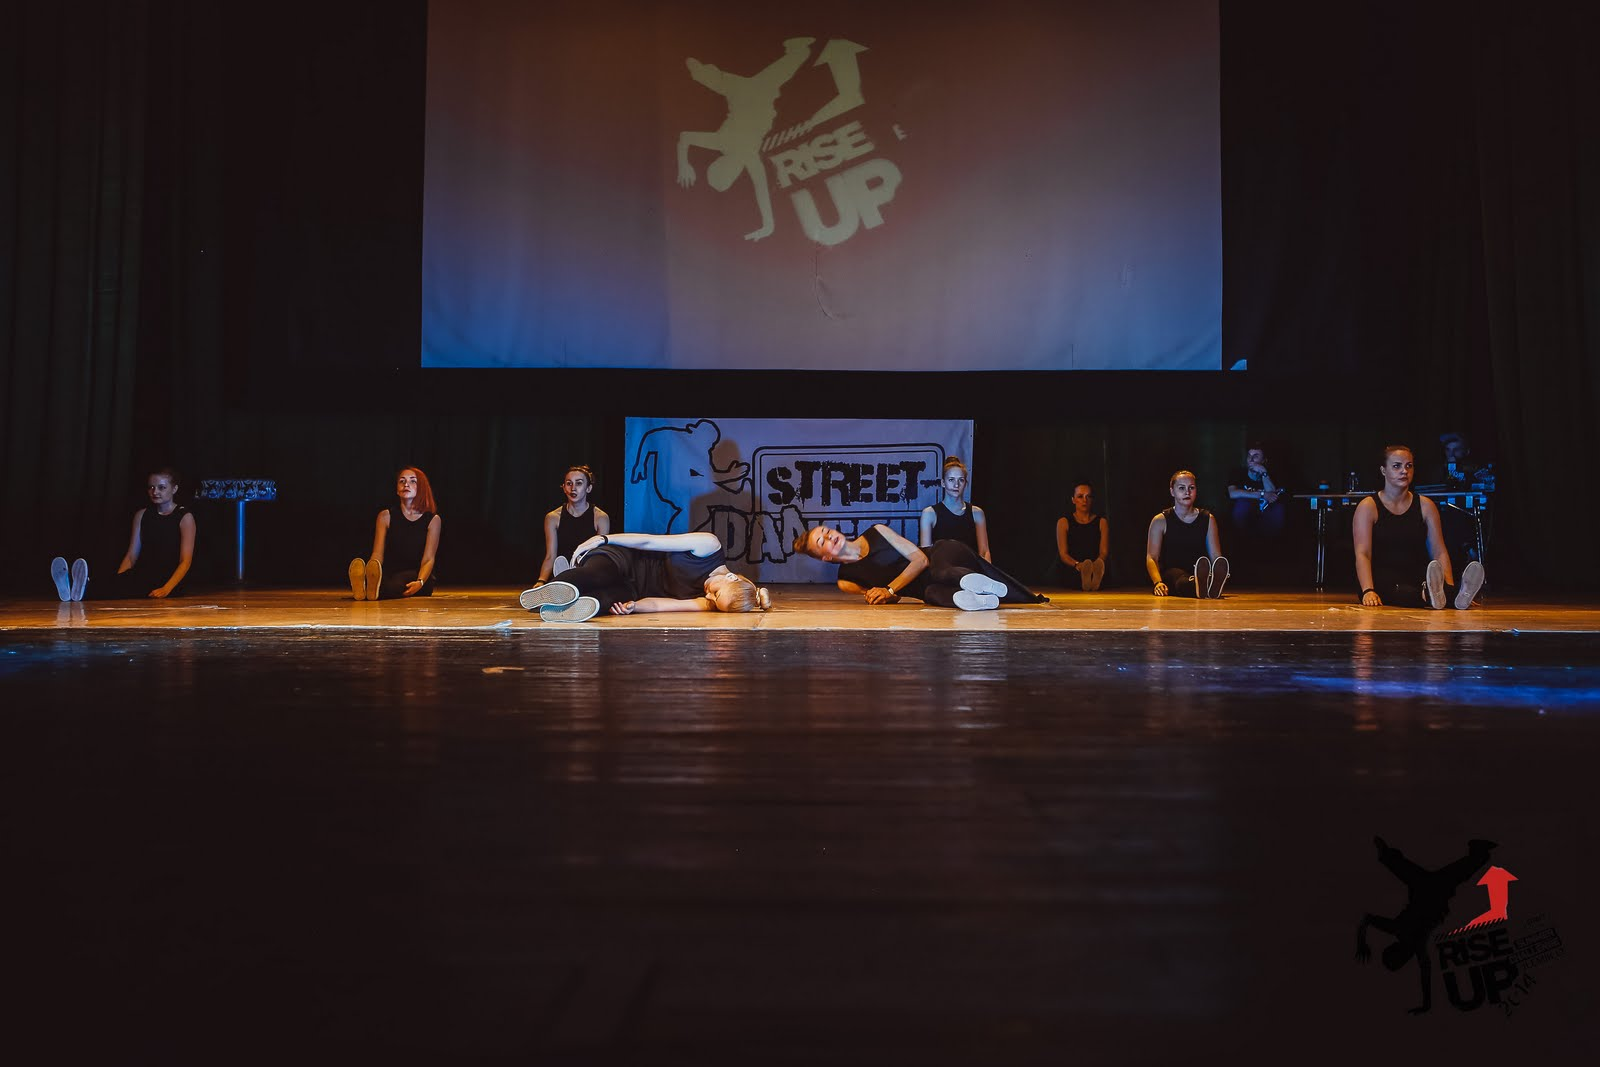 SKILLZ at RISEUP 2014 - _MG_7789.jpg